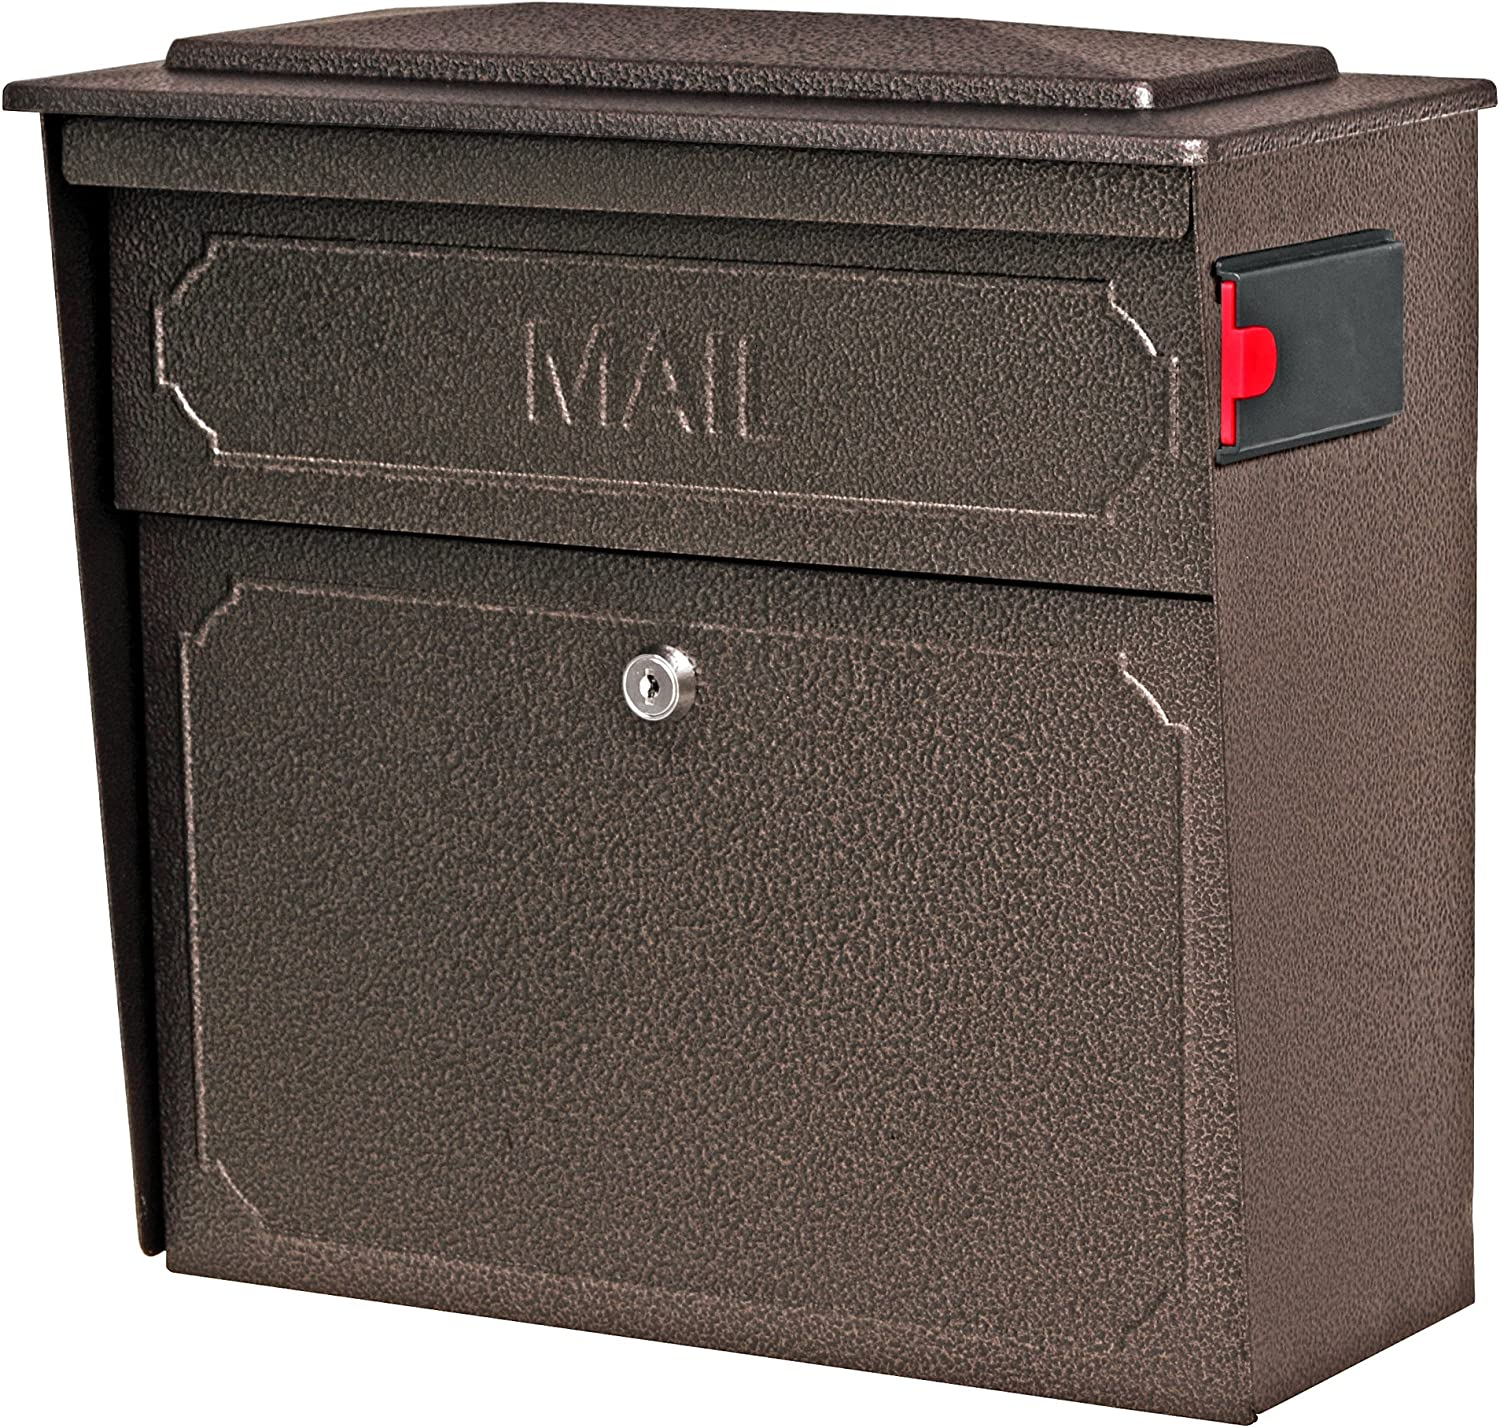 Mail Boss 7174 Townhouse, Bronze Wall Mount Decorative Locking Security Mailbox For Home